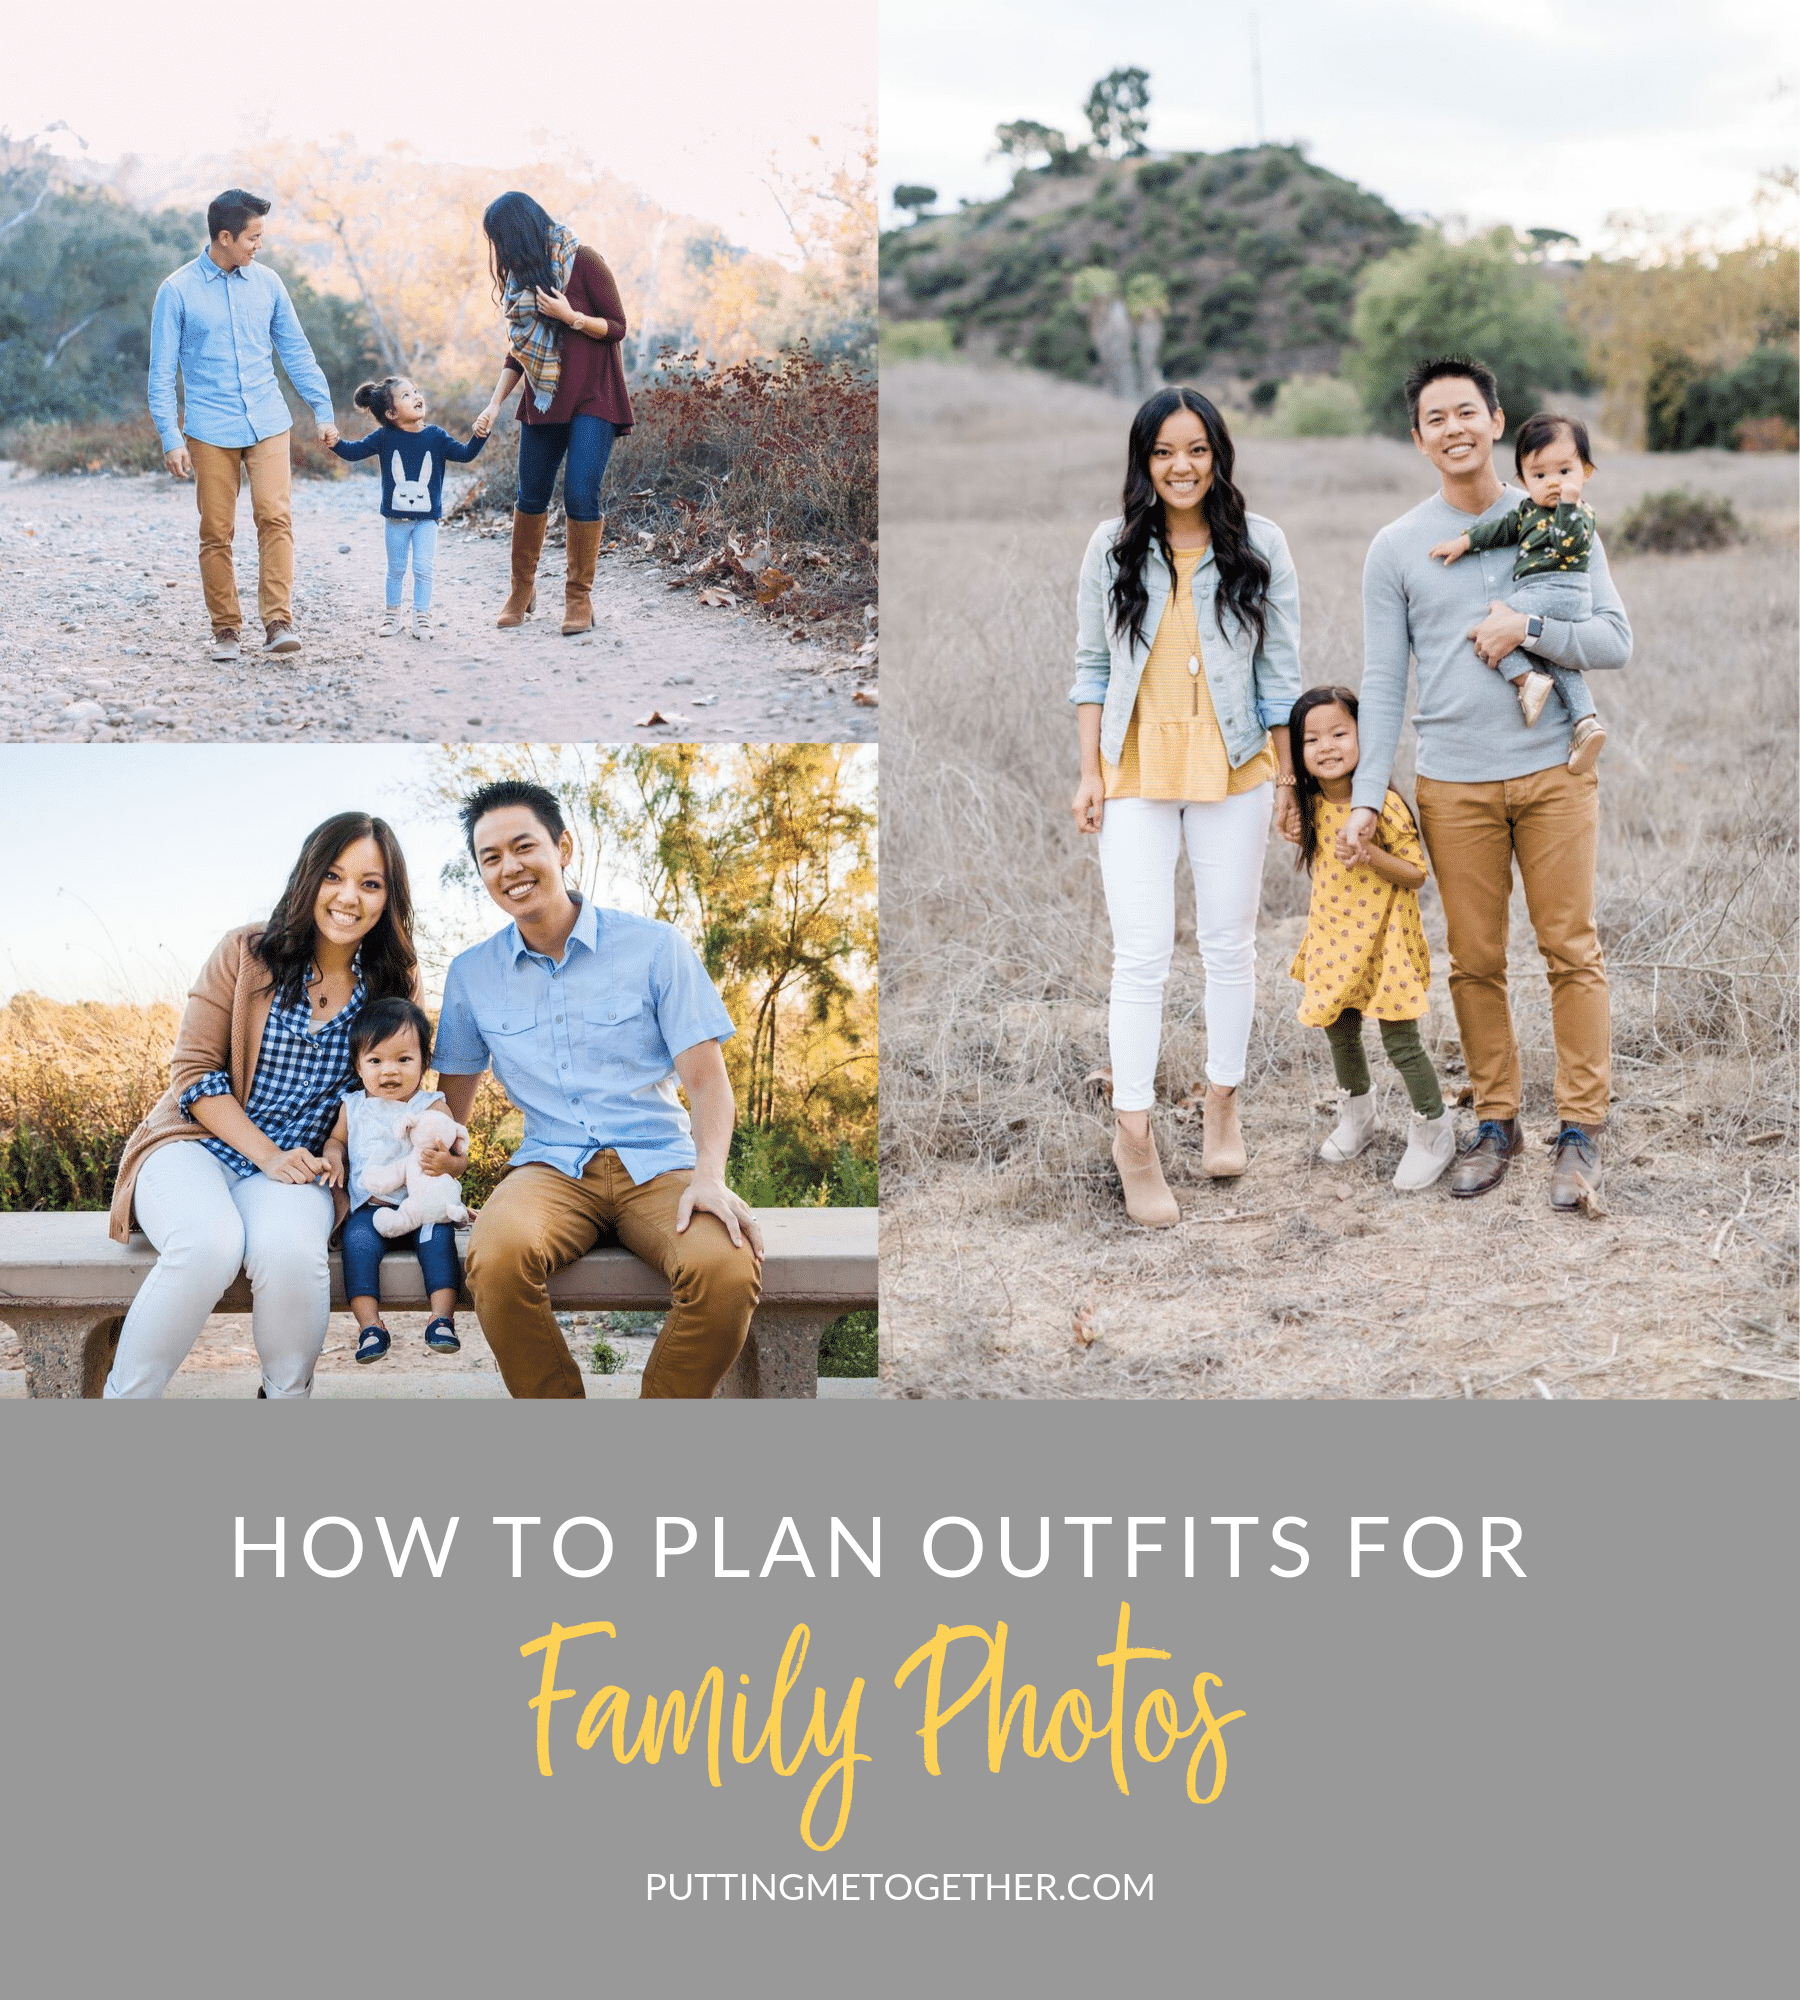 How to plan outfits for family photos